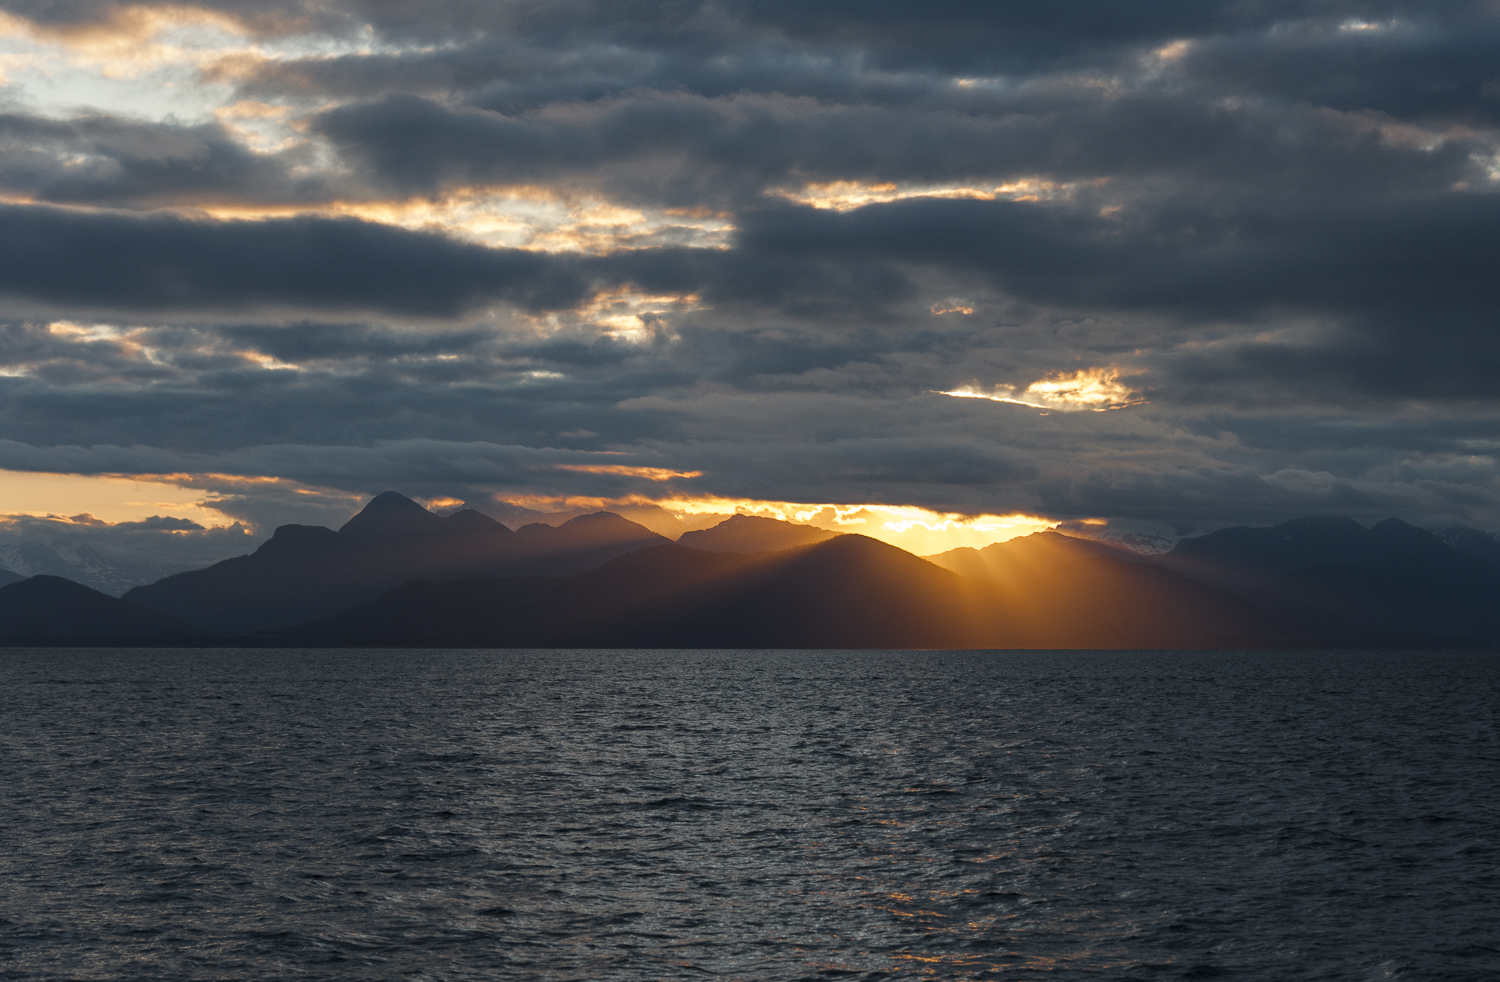 Sunrise is welcomed after an all night passage